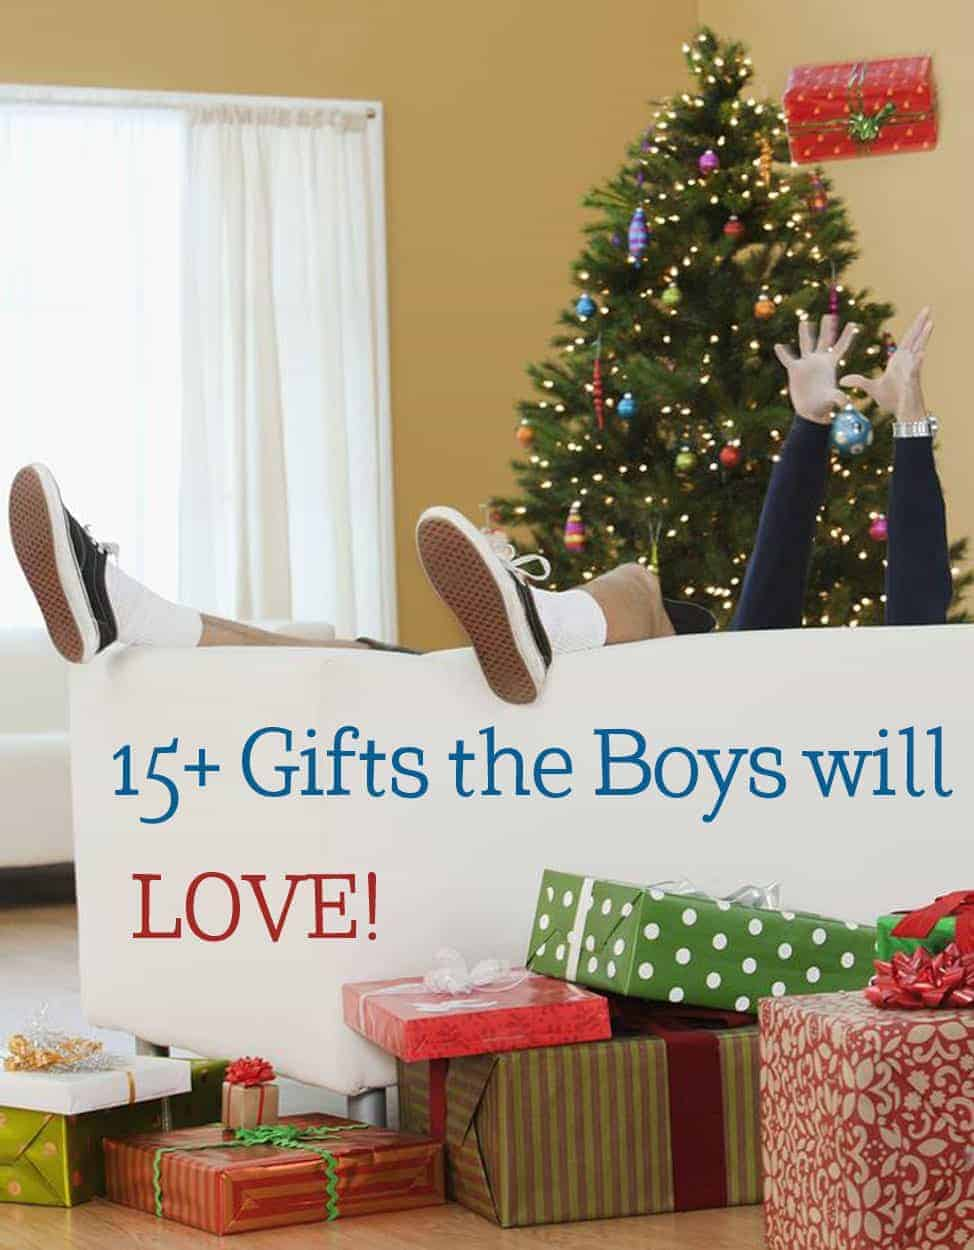 Great Gifts for Boys! Whether you need a birthday gift or holiday gift for the boy(s) in your life, these ideas will help!